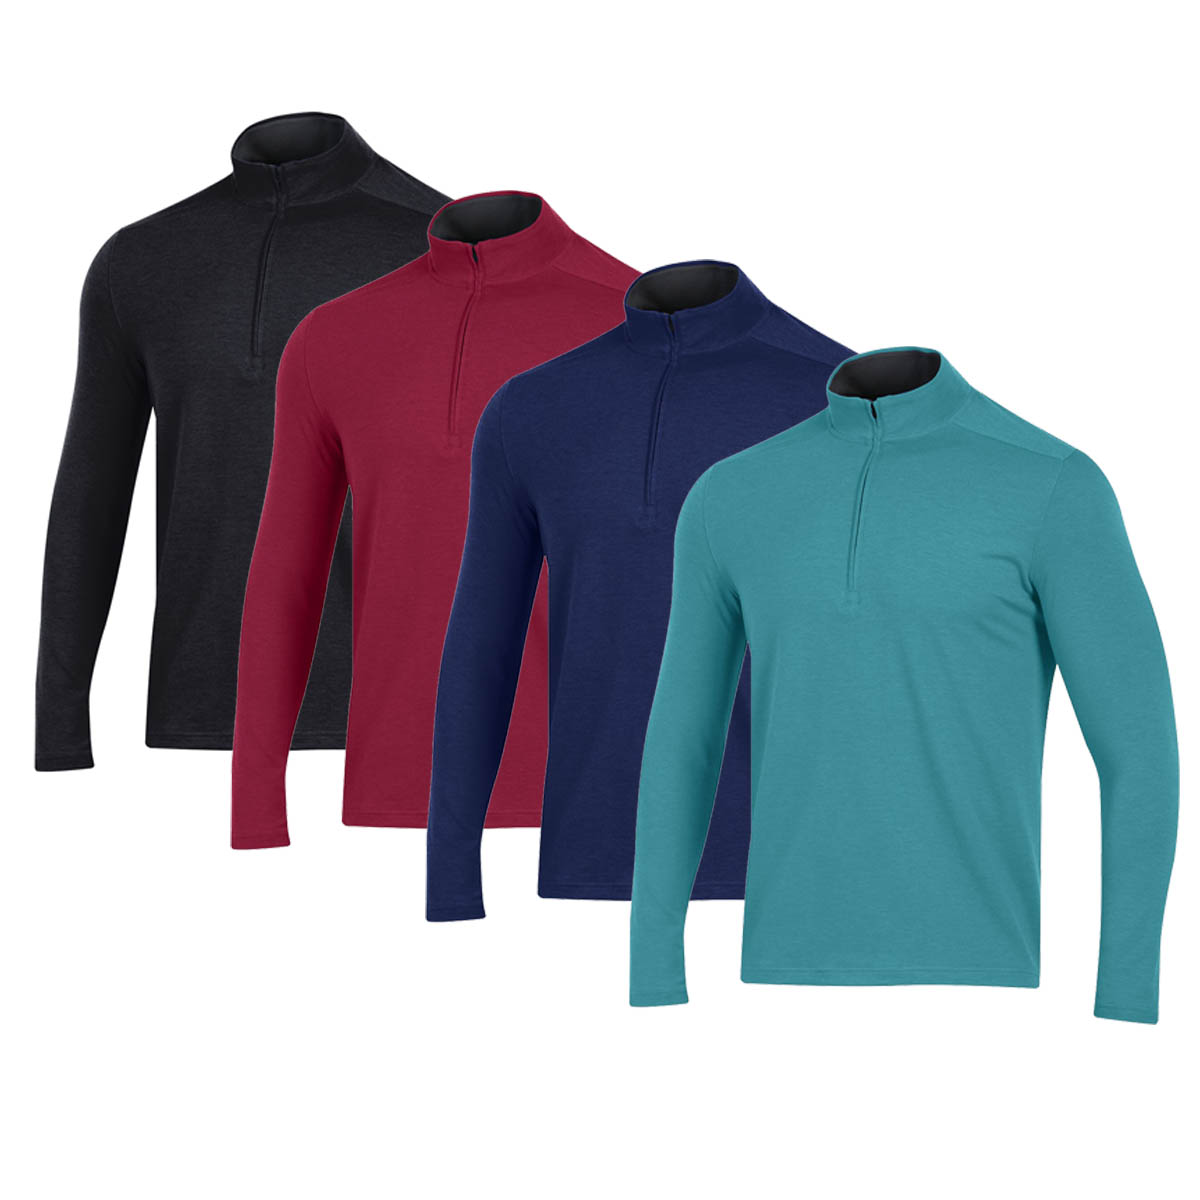 Under Armour Men's Drive 1/4 Zip Fleece